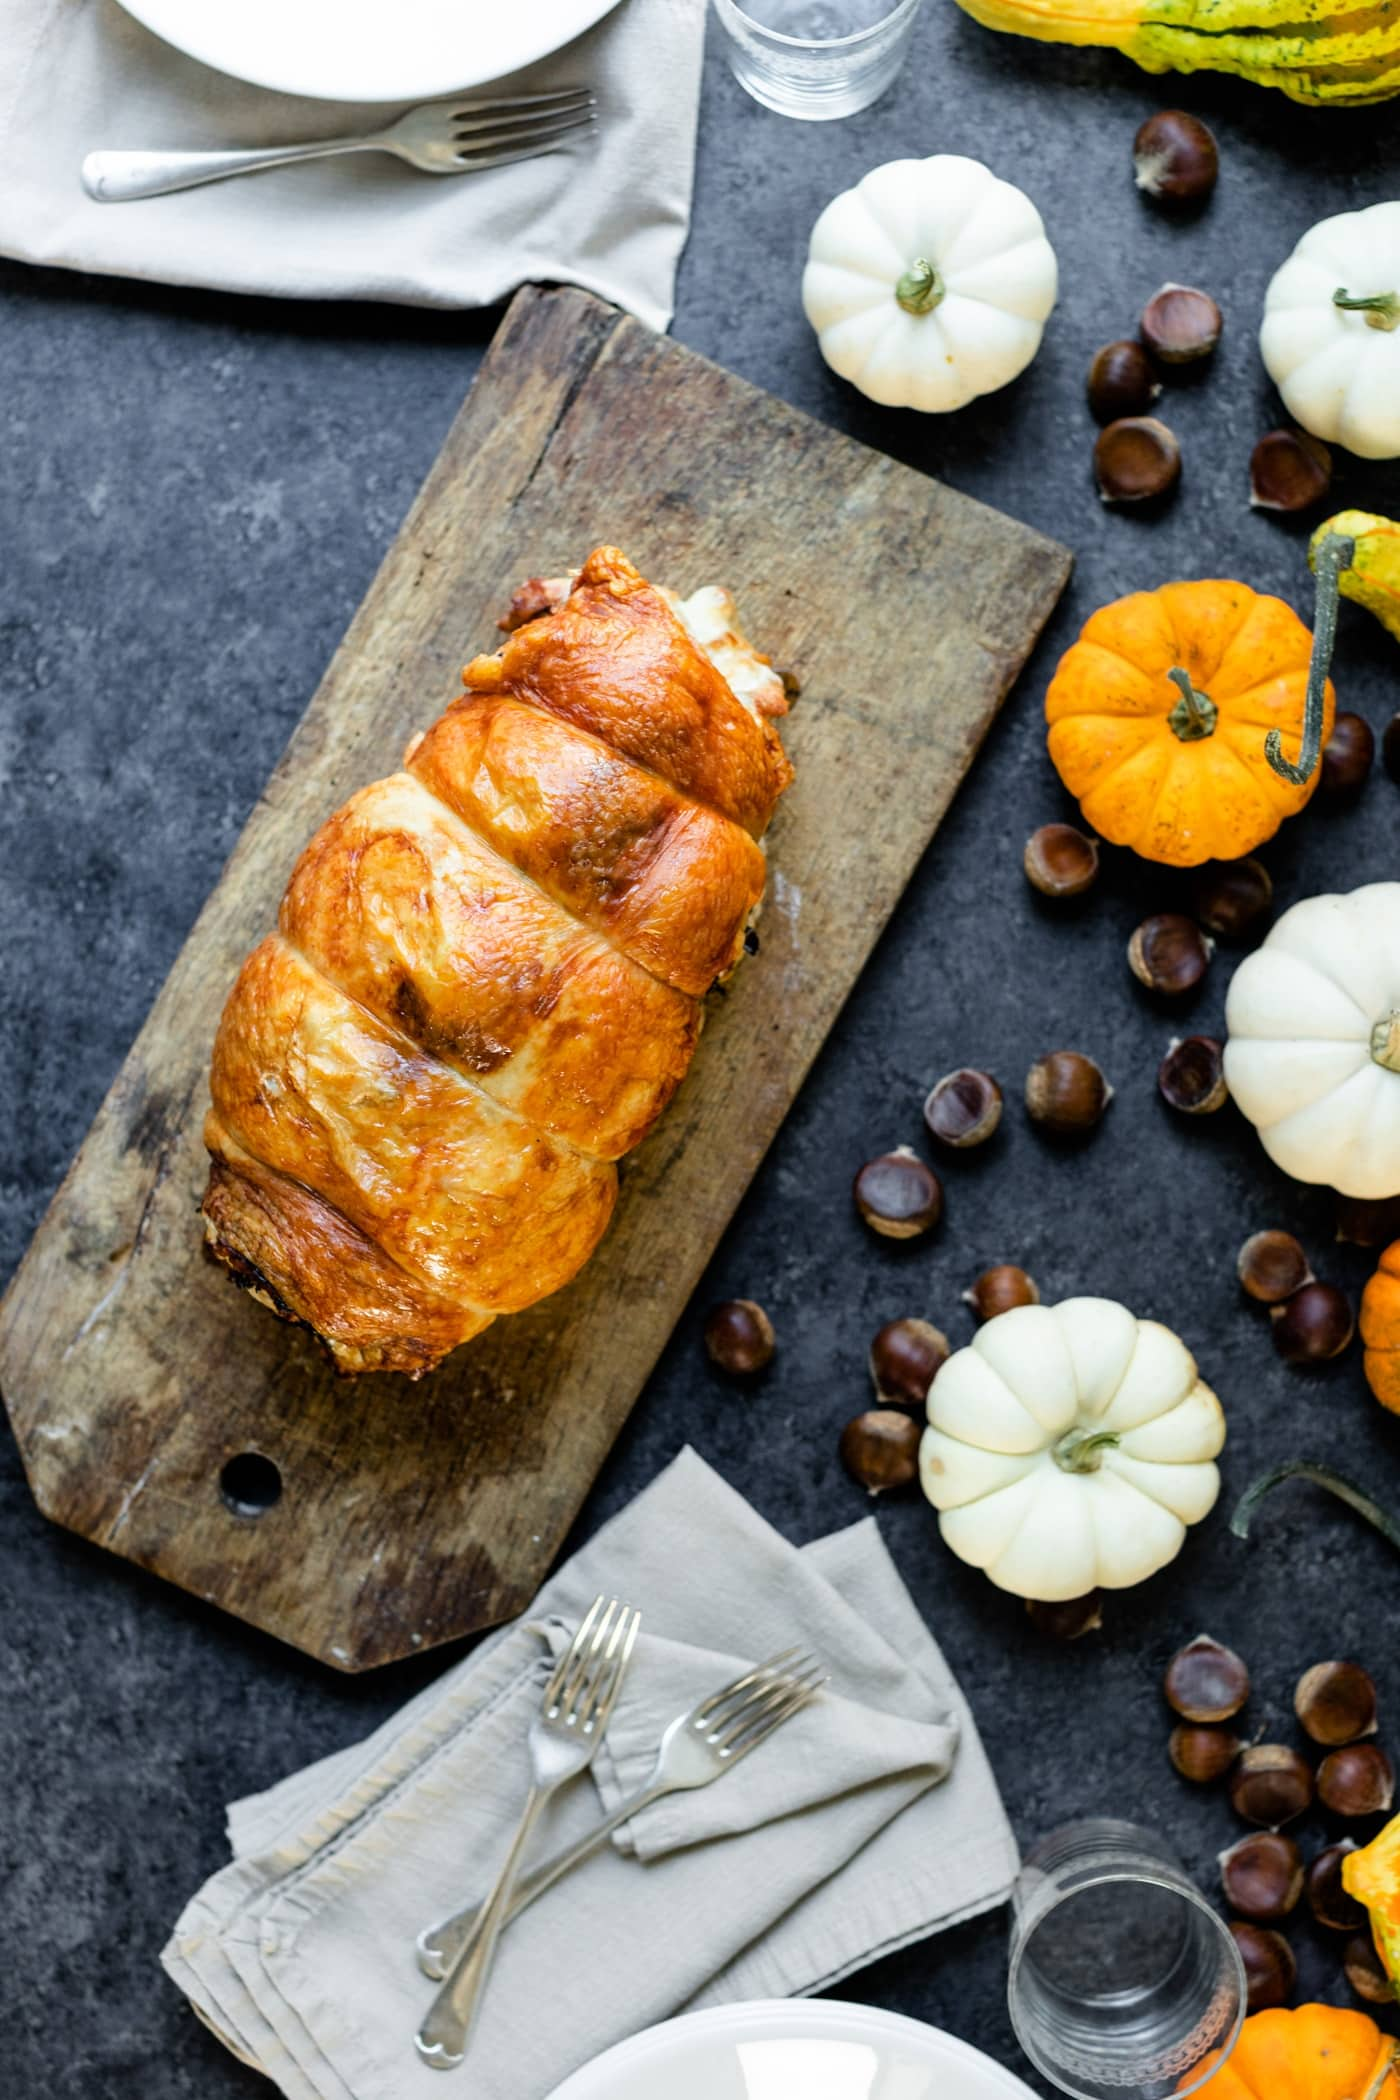 Turkey roulade sitting on wood board with white and orange pumpkins, linen napkins and plates on a gray slate surface